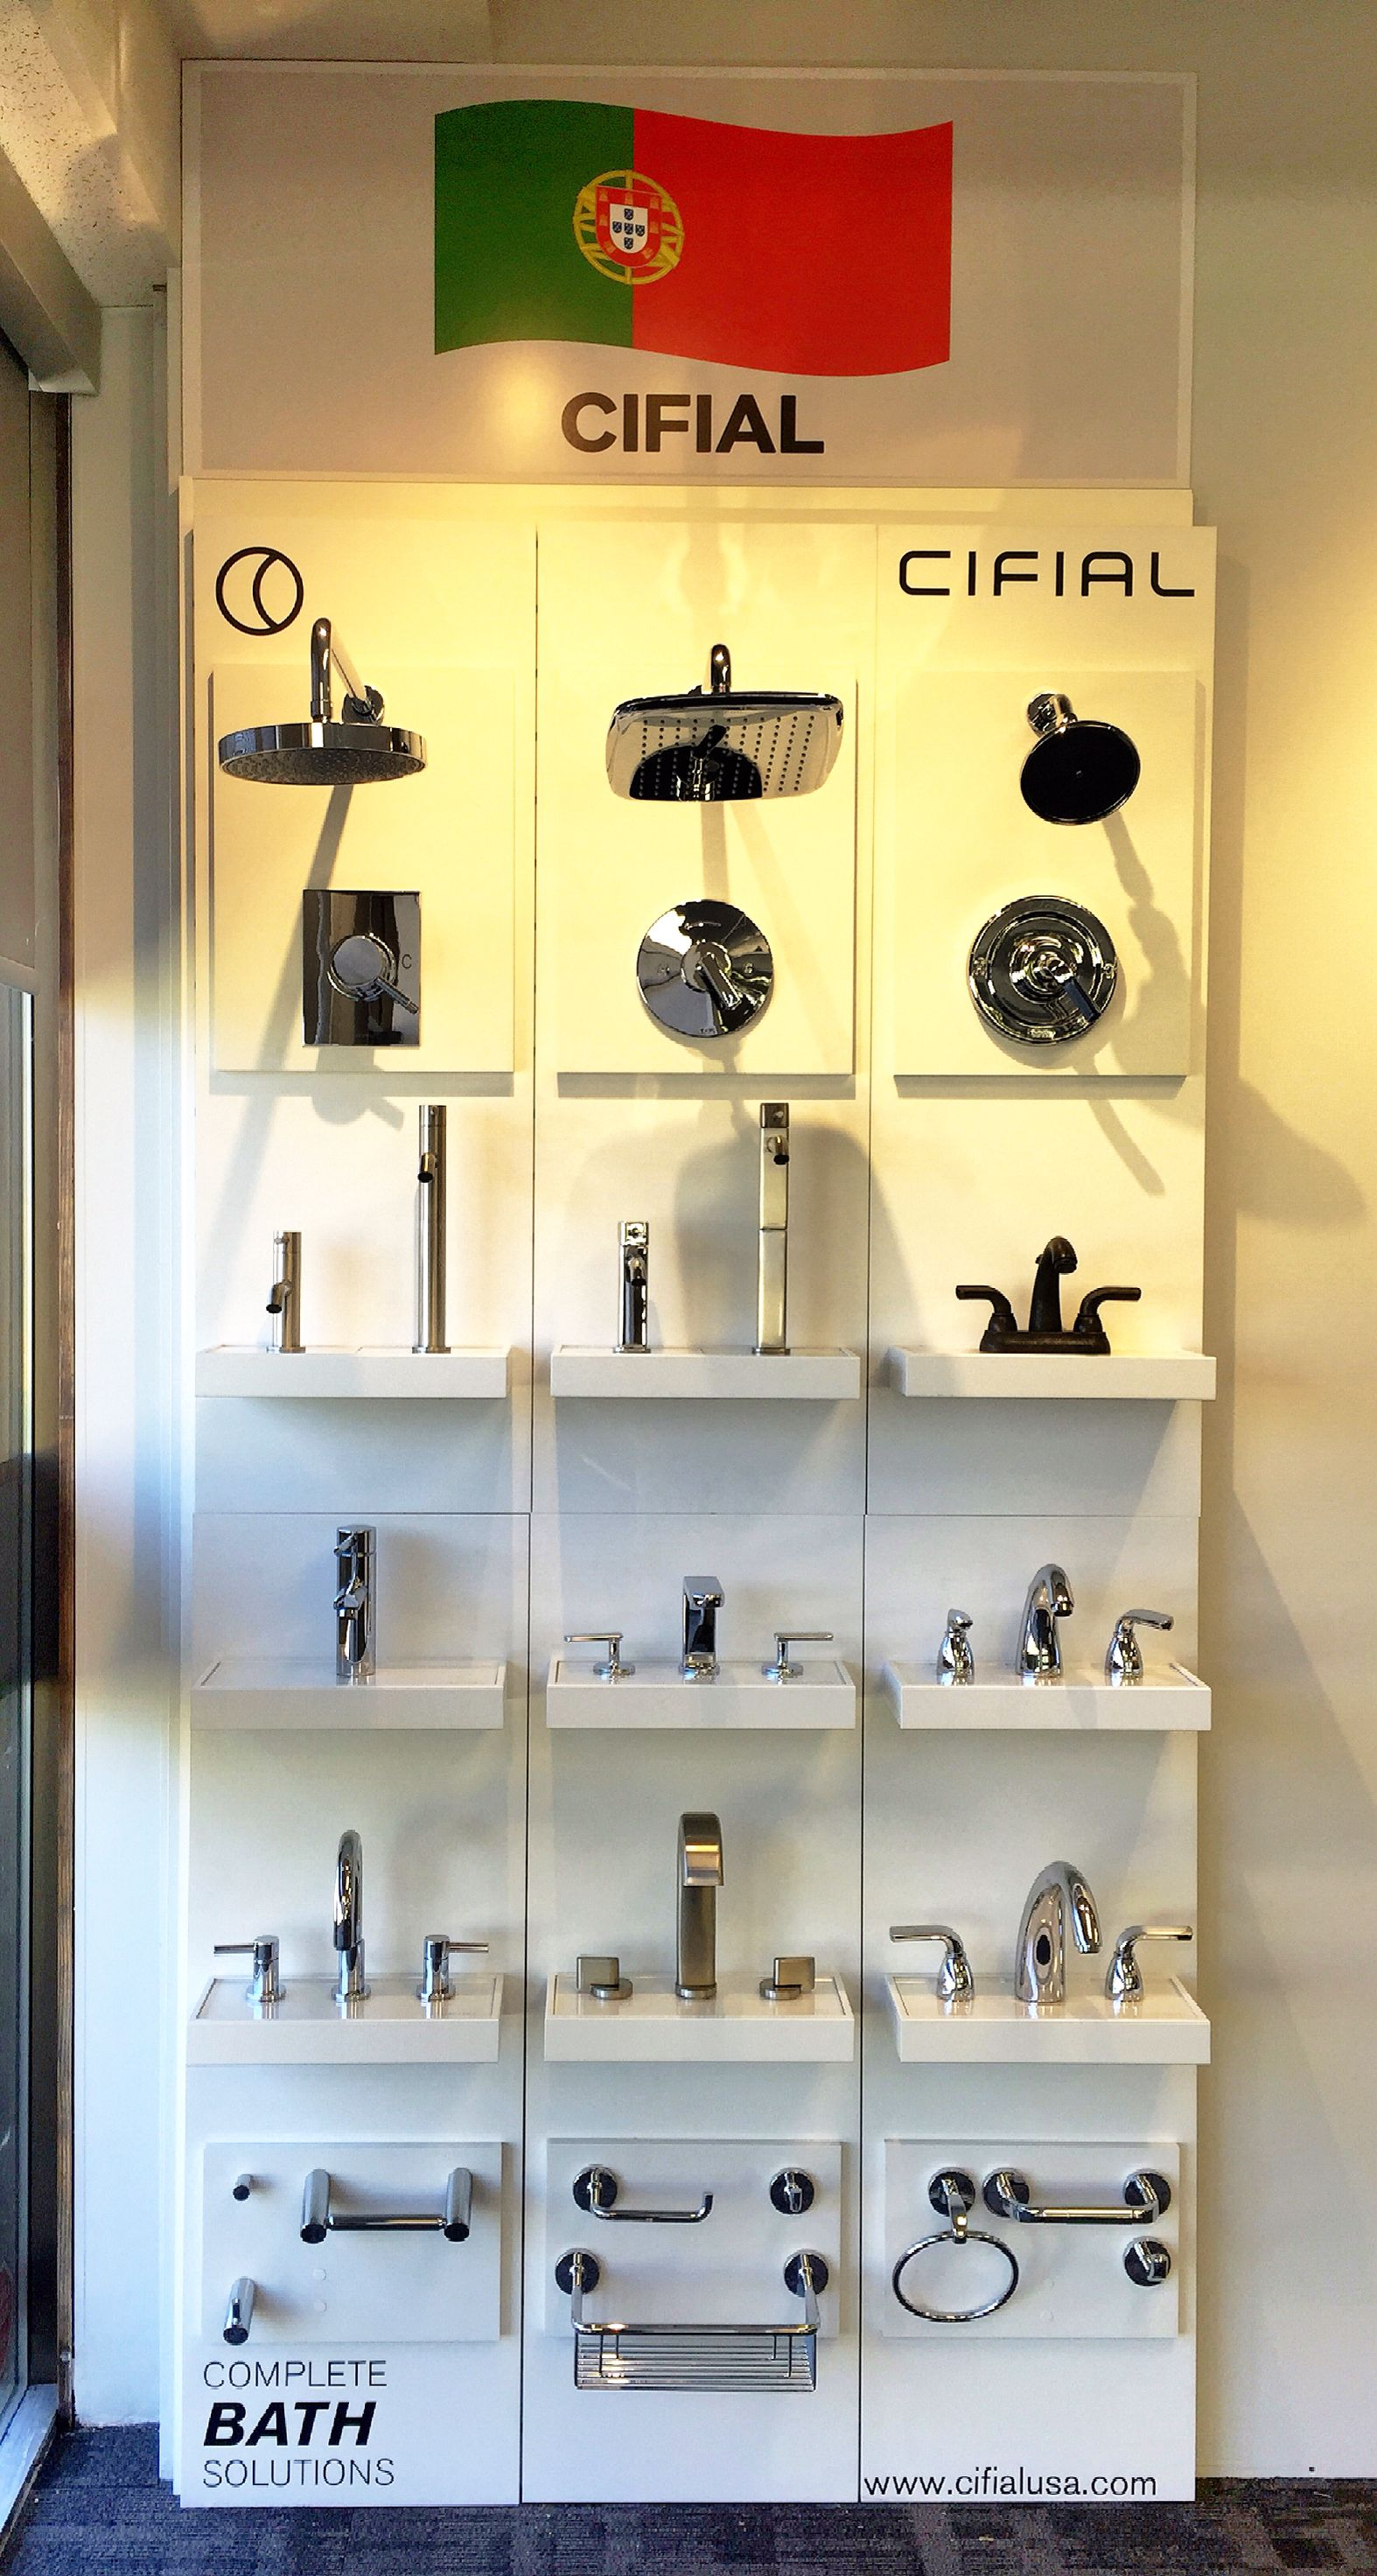 Got The #Cifial #display #faucet #boards Up On The Wall